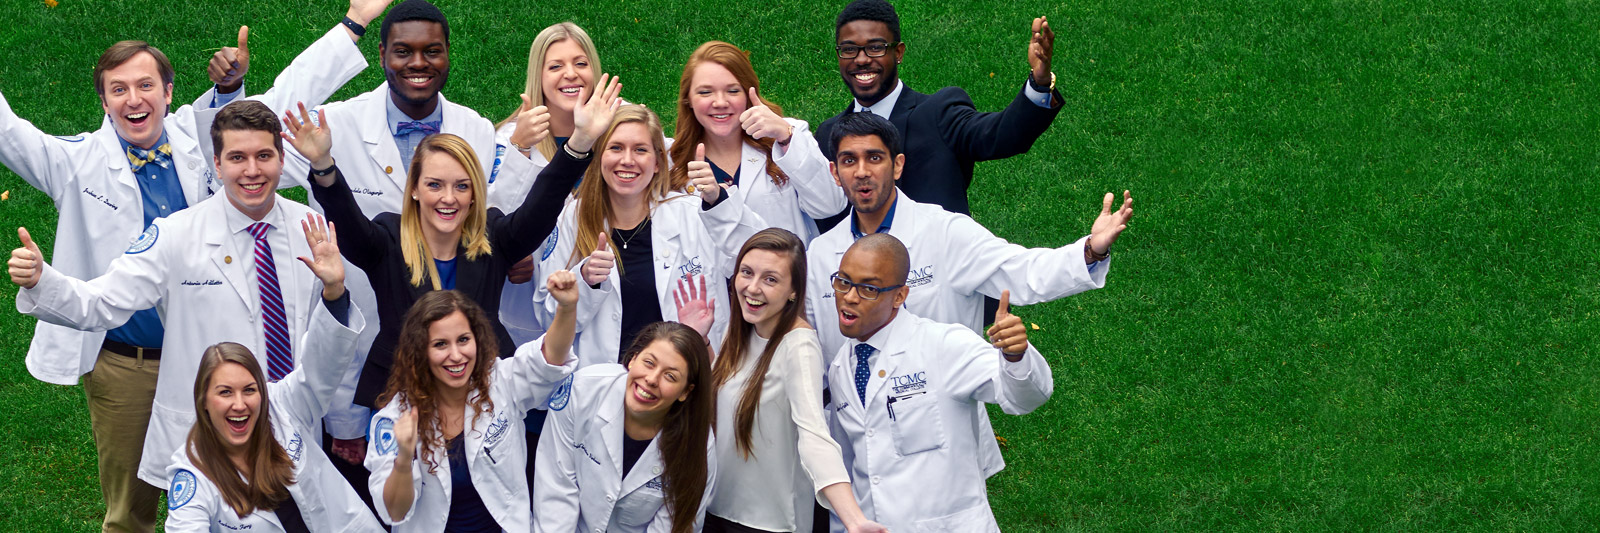 Geisinger Commonwealth students on grass field with arms raised